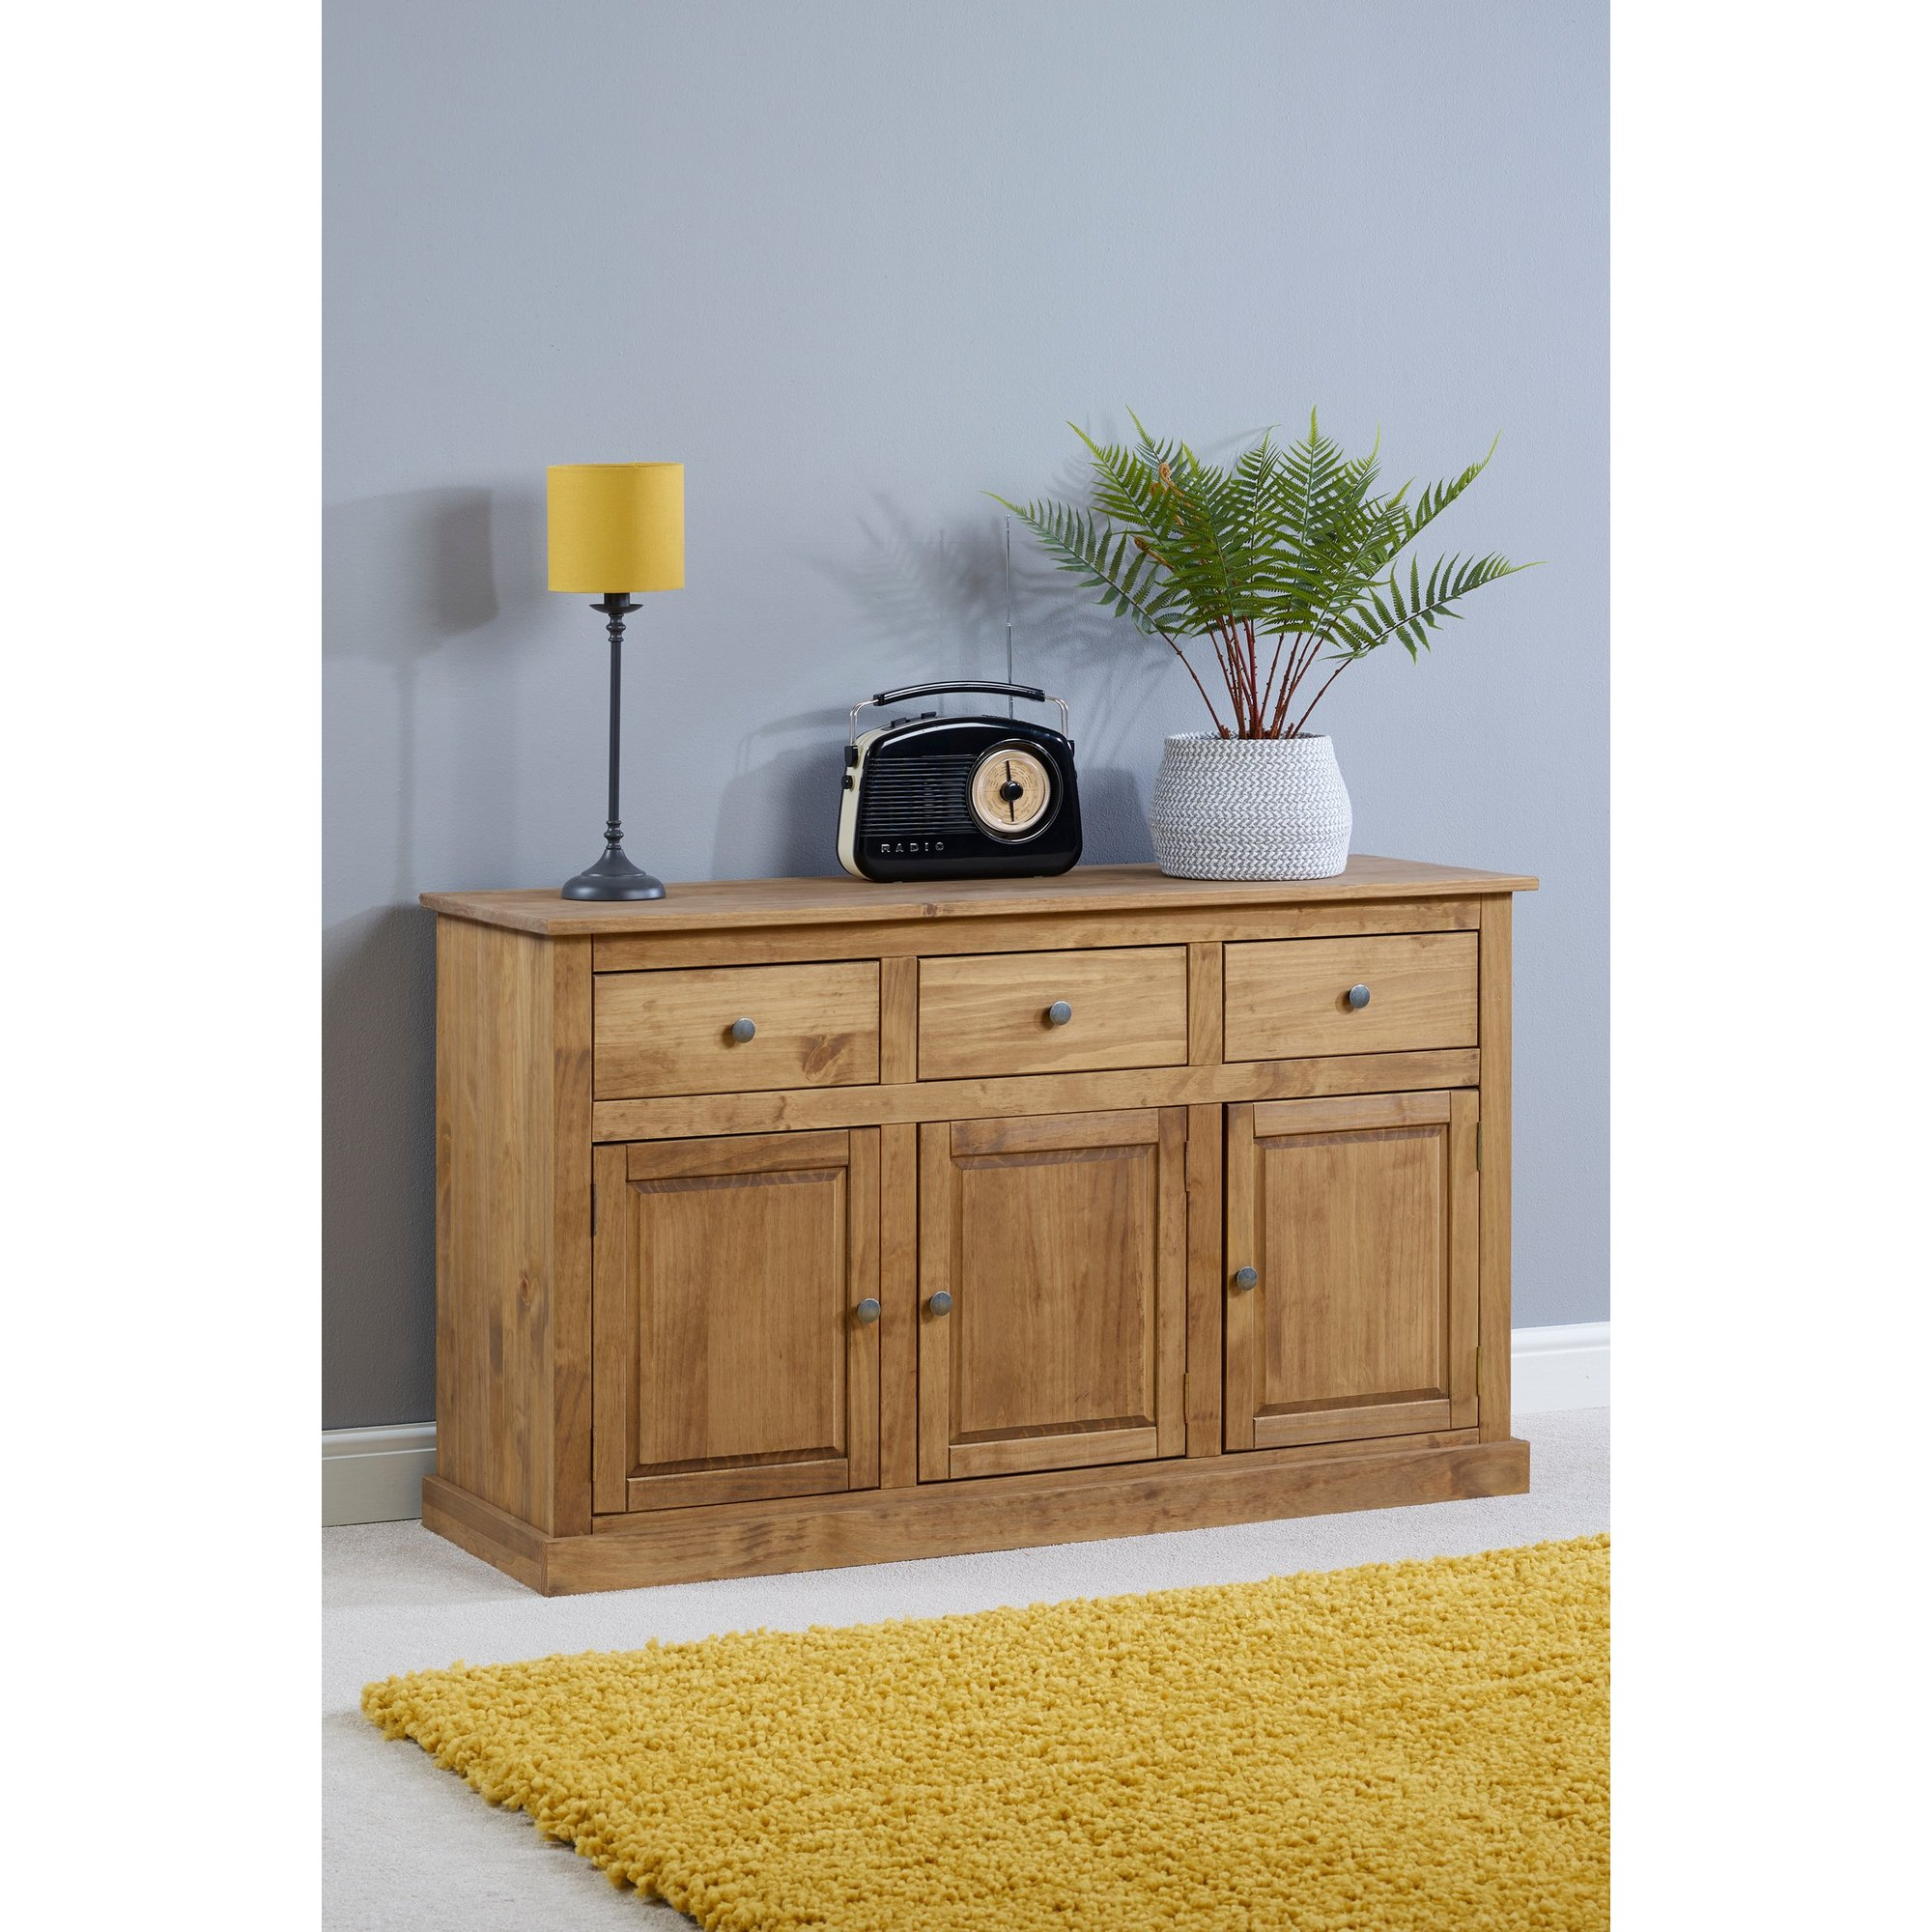 Image of Harrington Large Sideboard